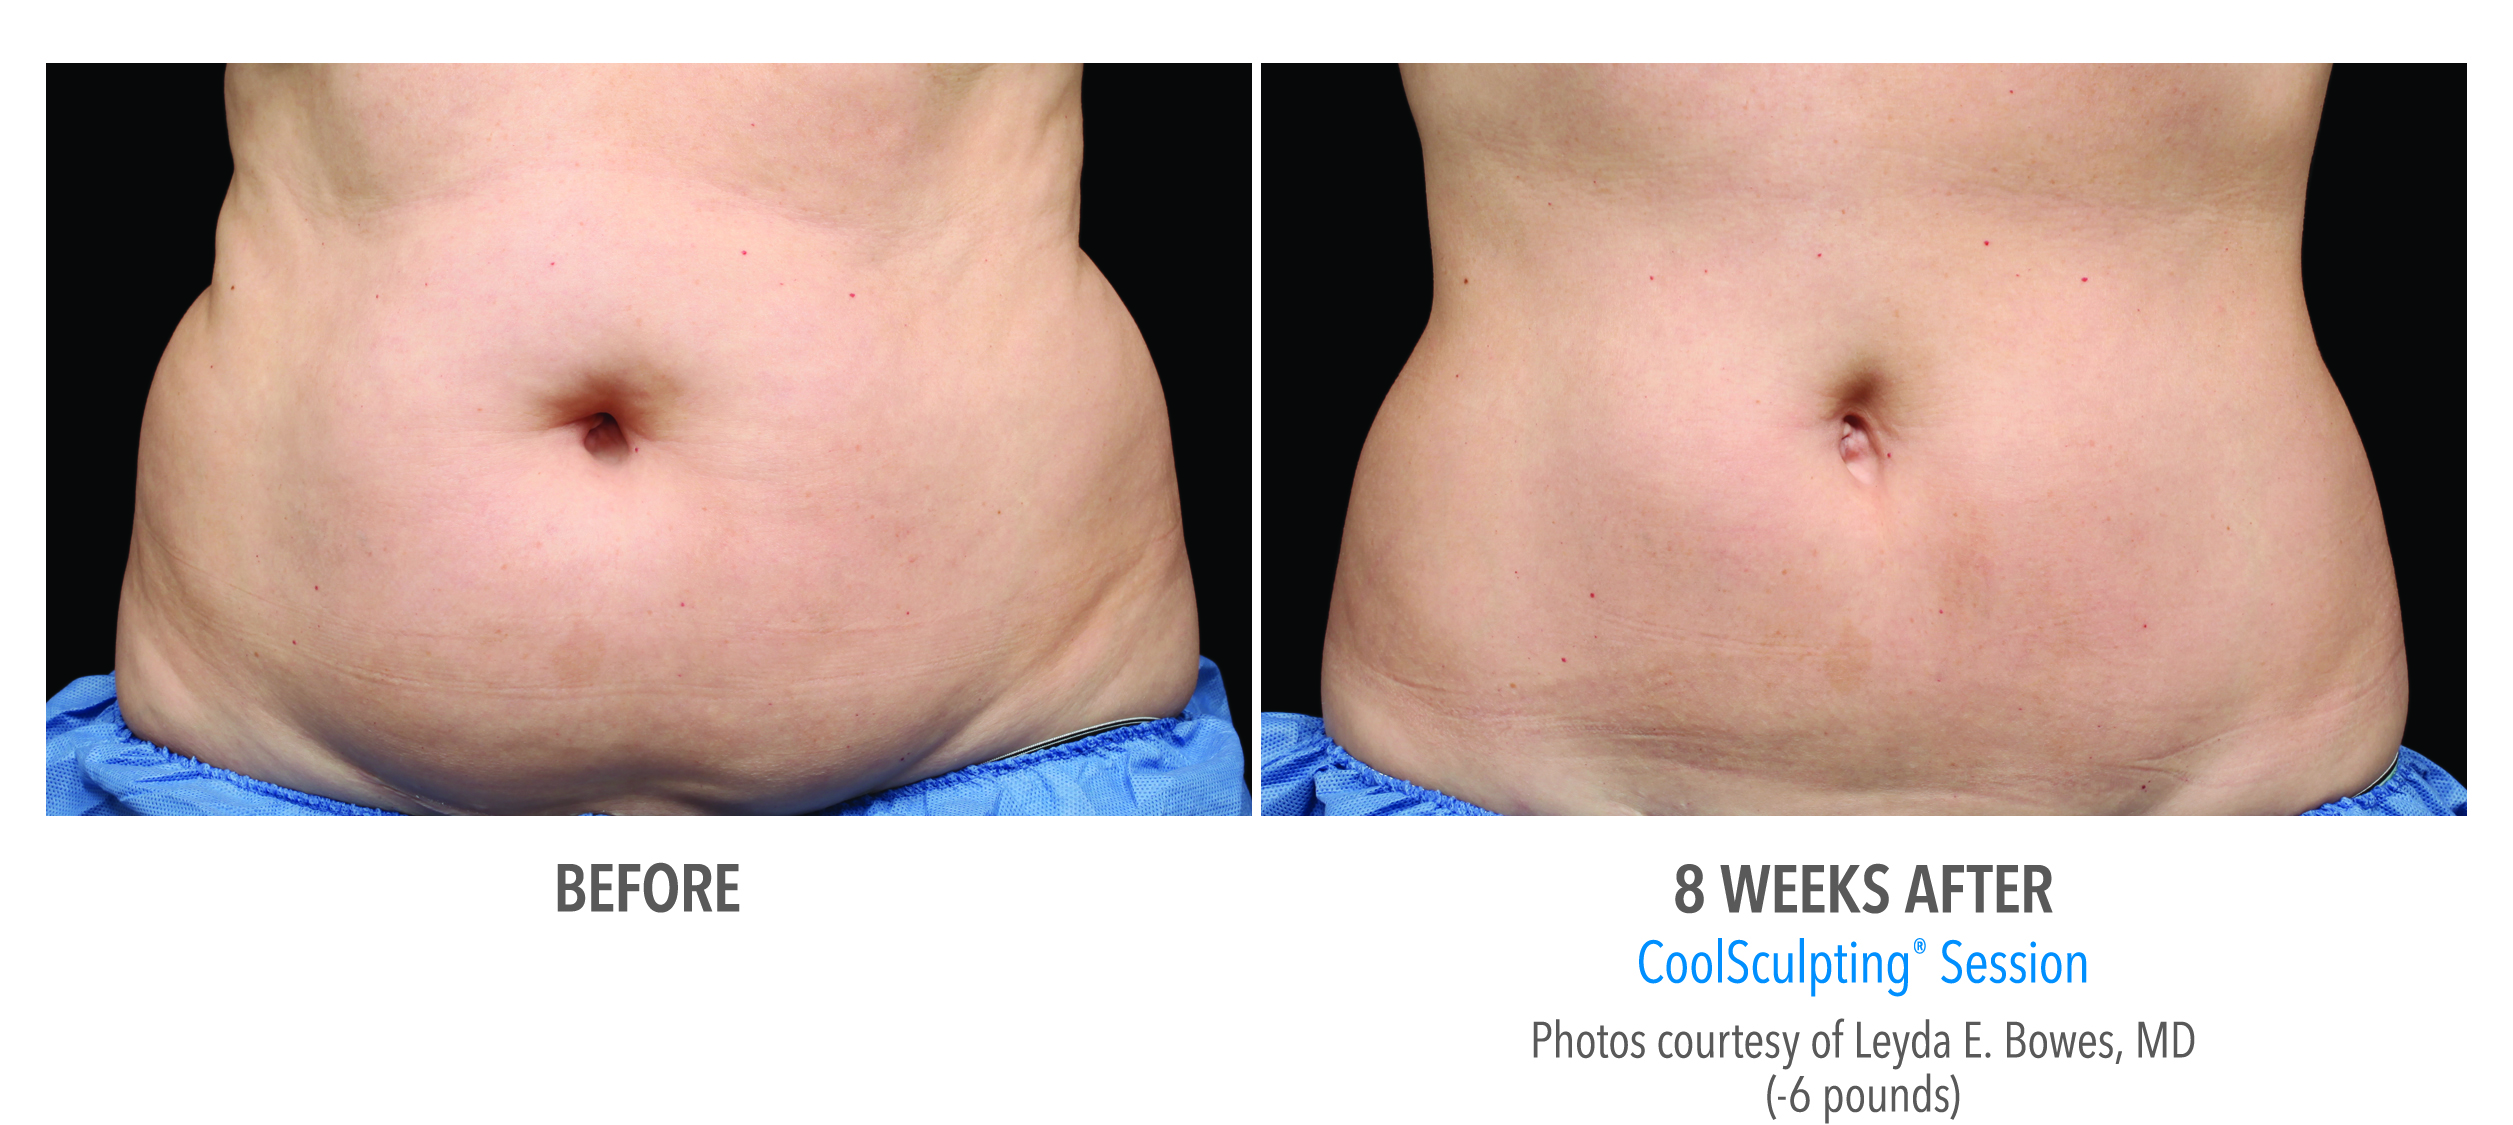 When you've done all the workout & dieting you can do for stubborn fat, CoolSculpting at Belle Vie is your solution.